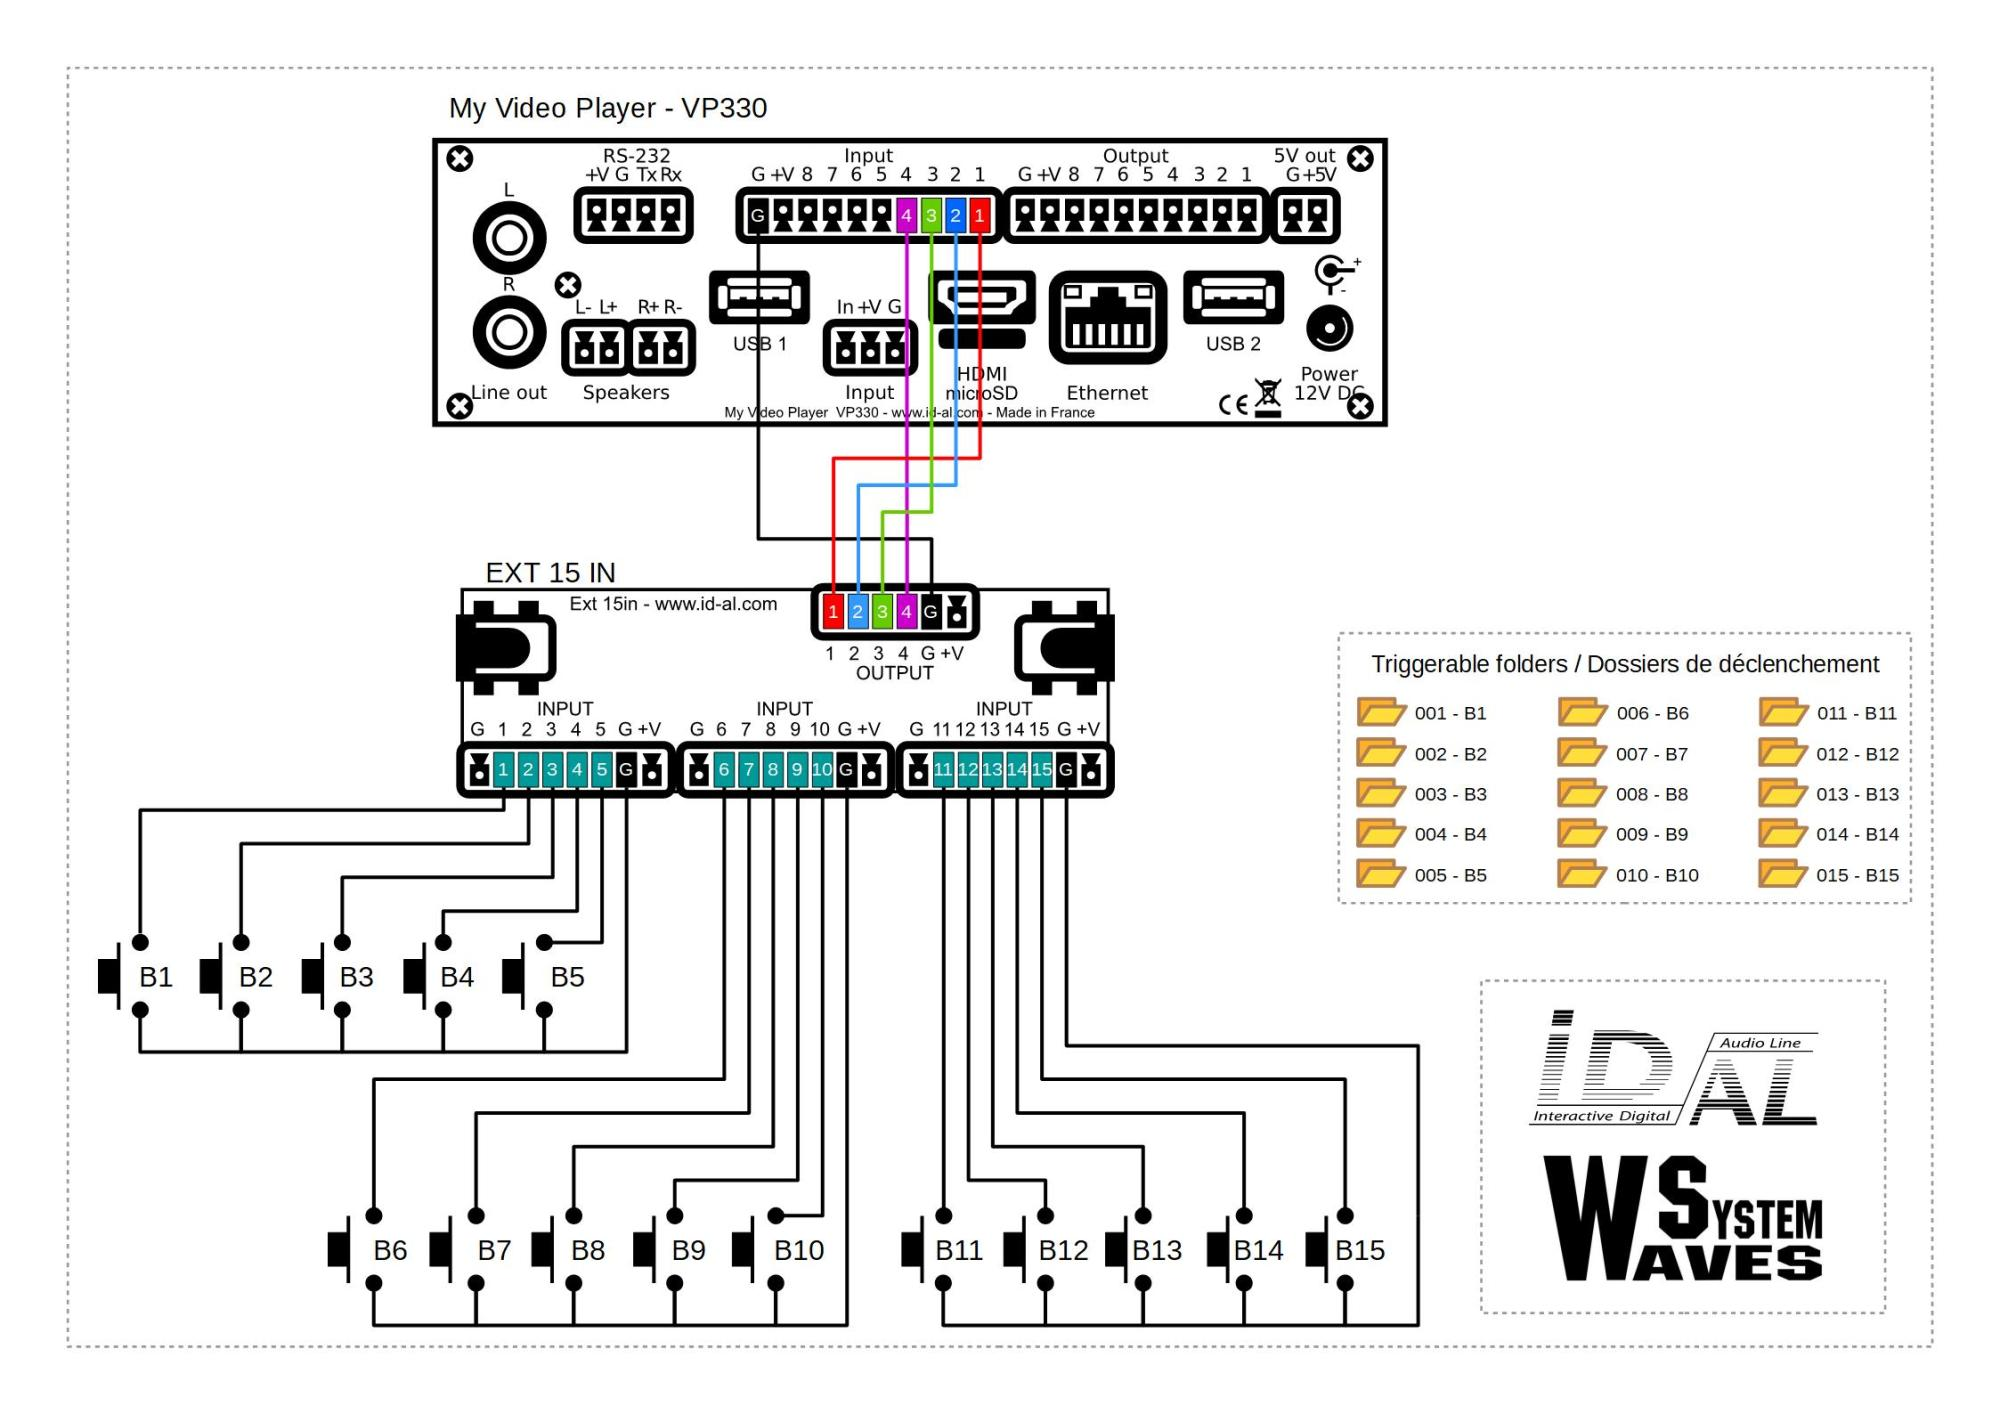 hight resolution of wiring diagram for my video player vp330 connection of 15 push buttons with a ext15 in extension board